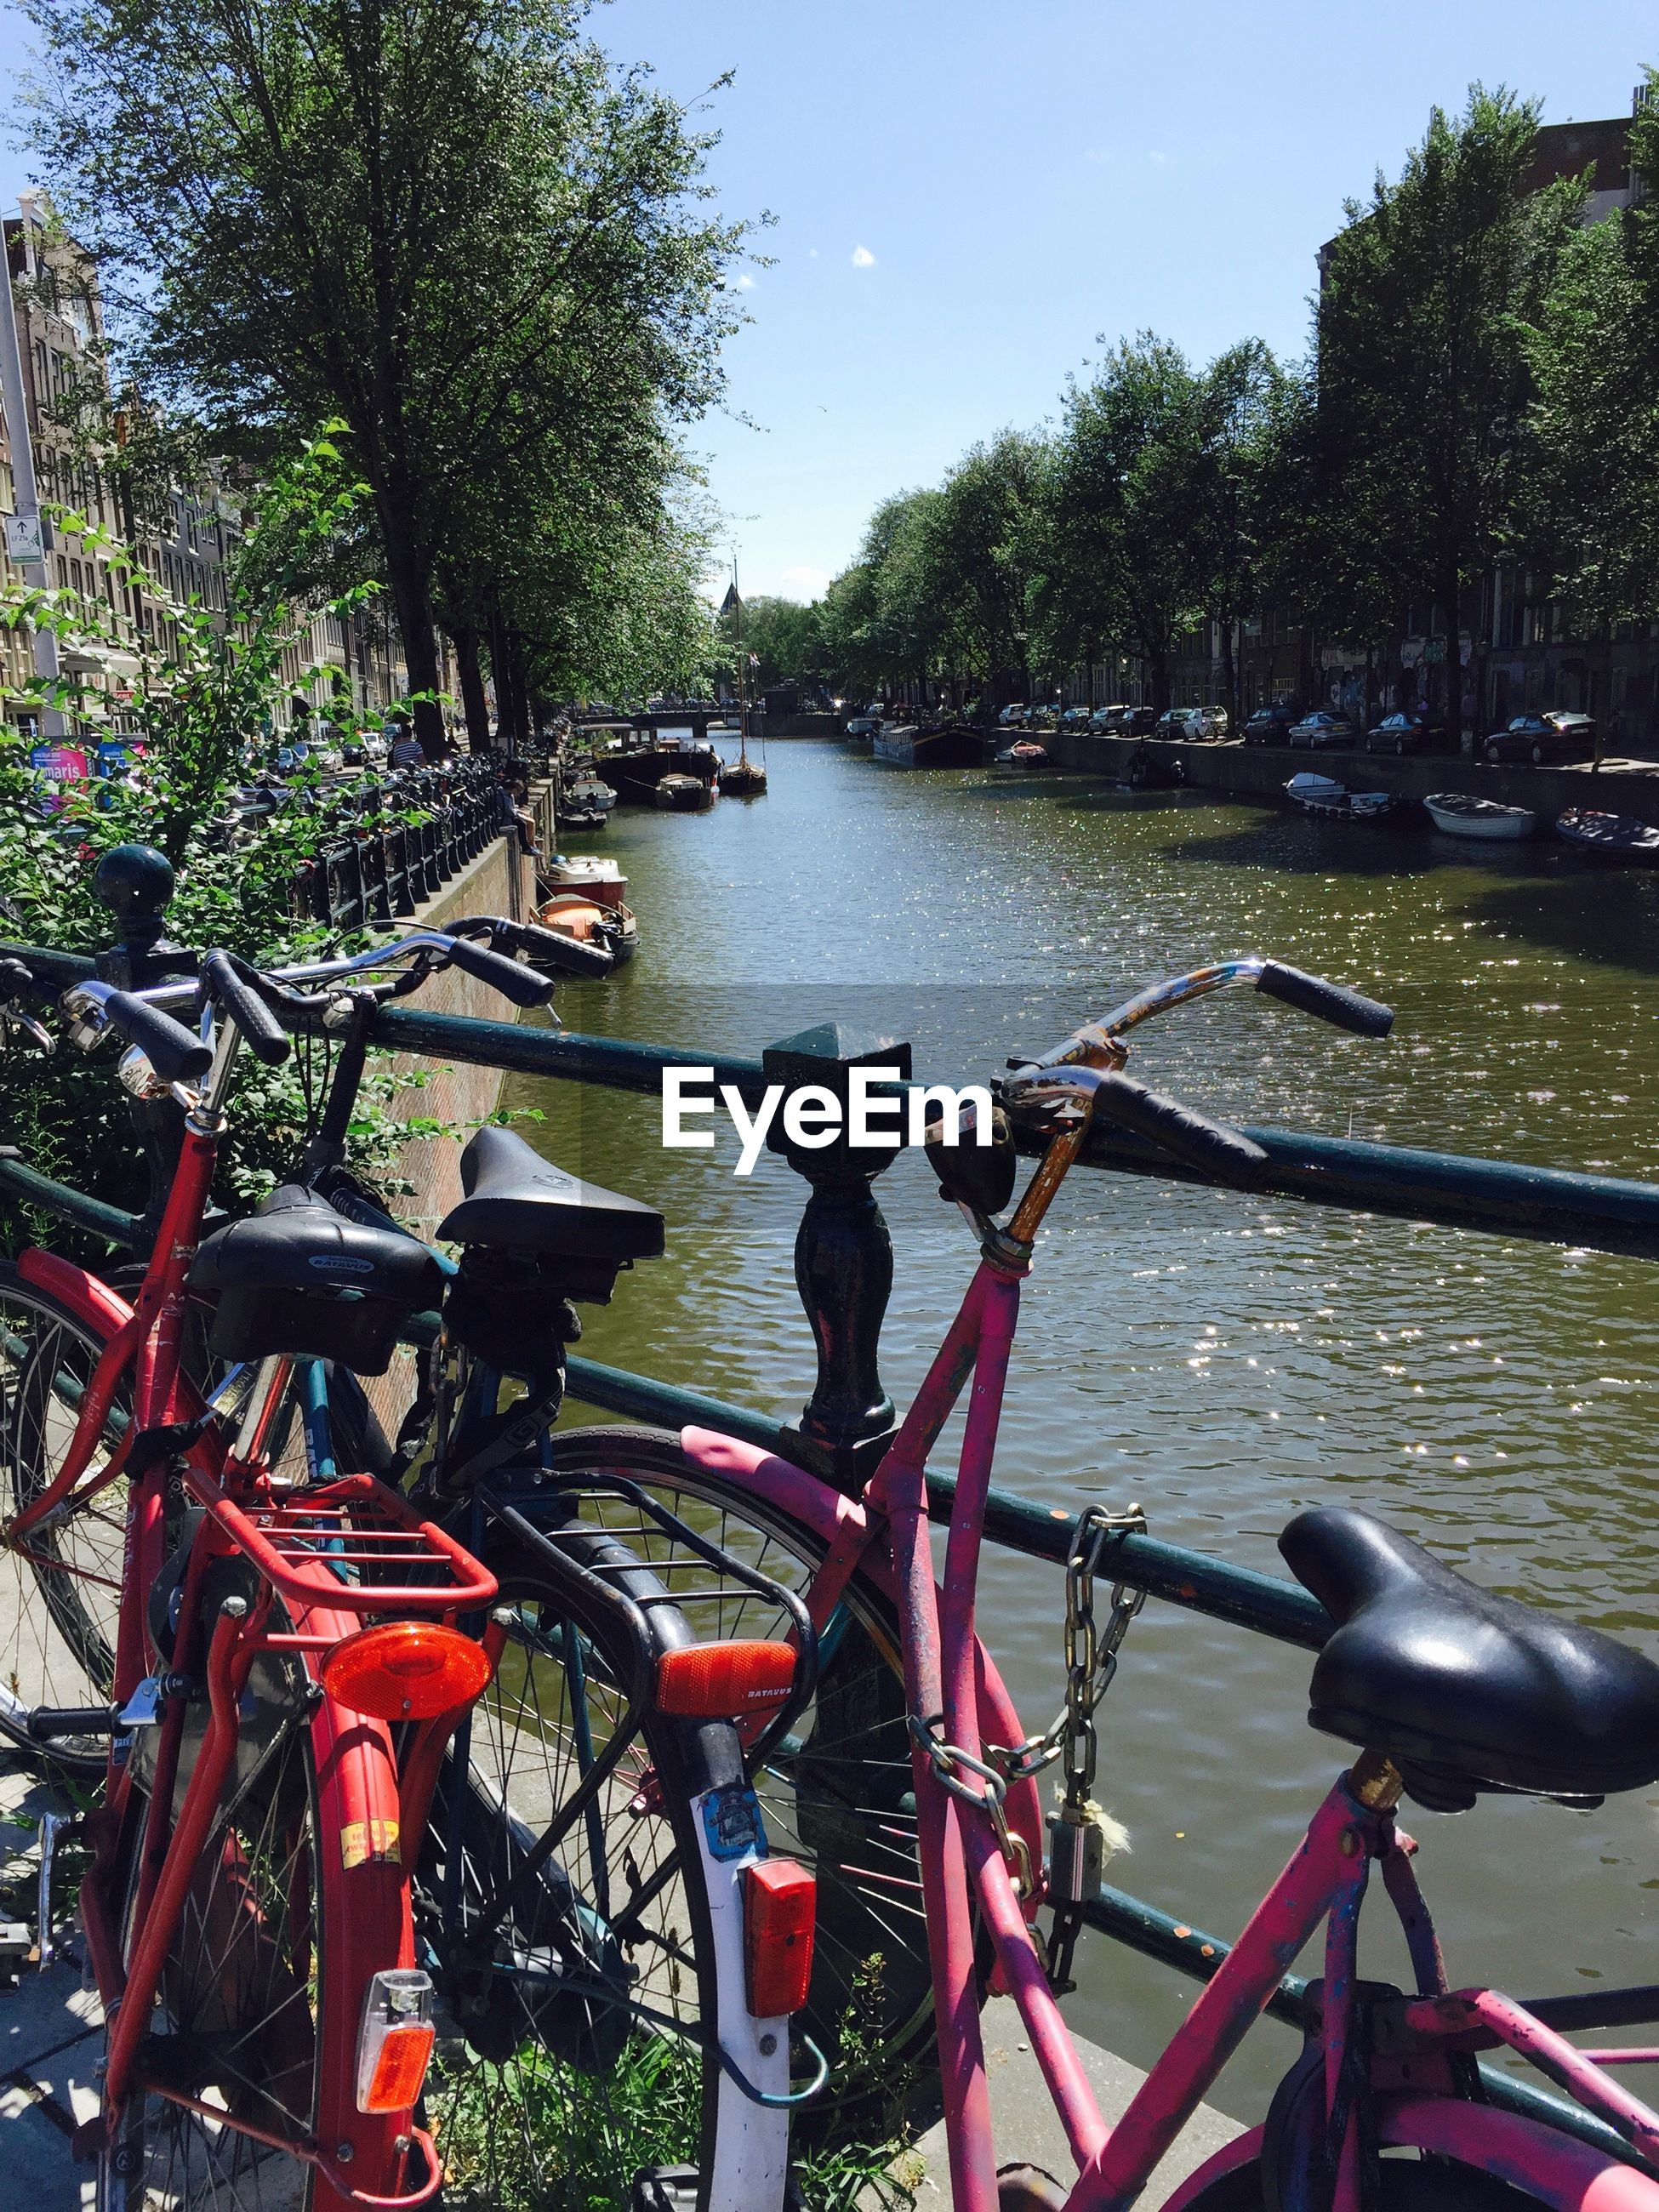 Bicycles parked at railing by canal against trees